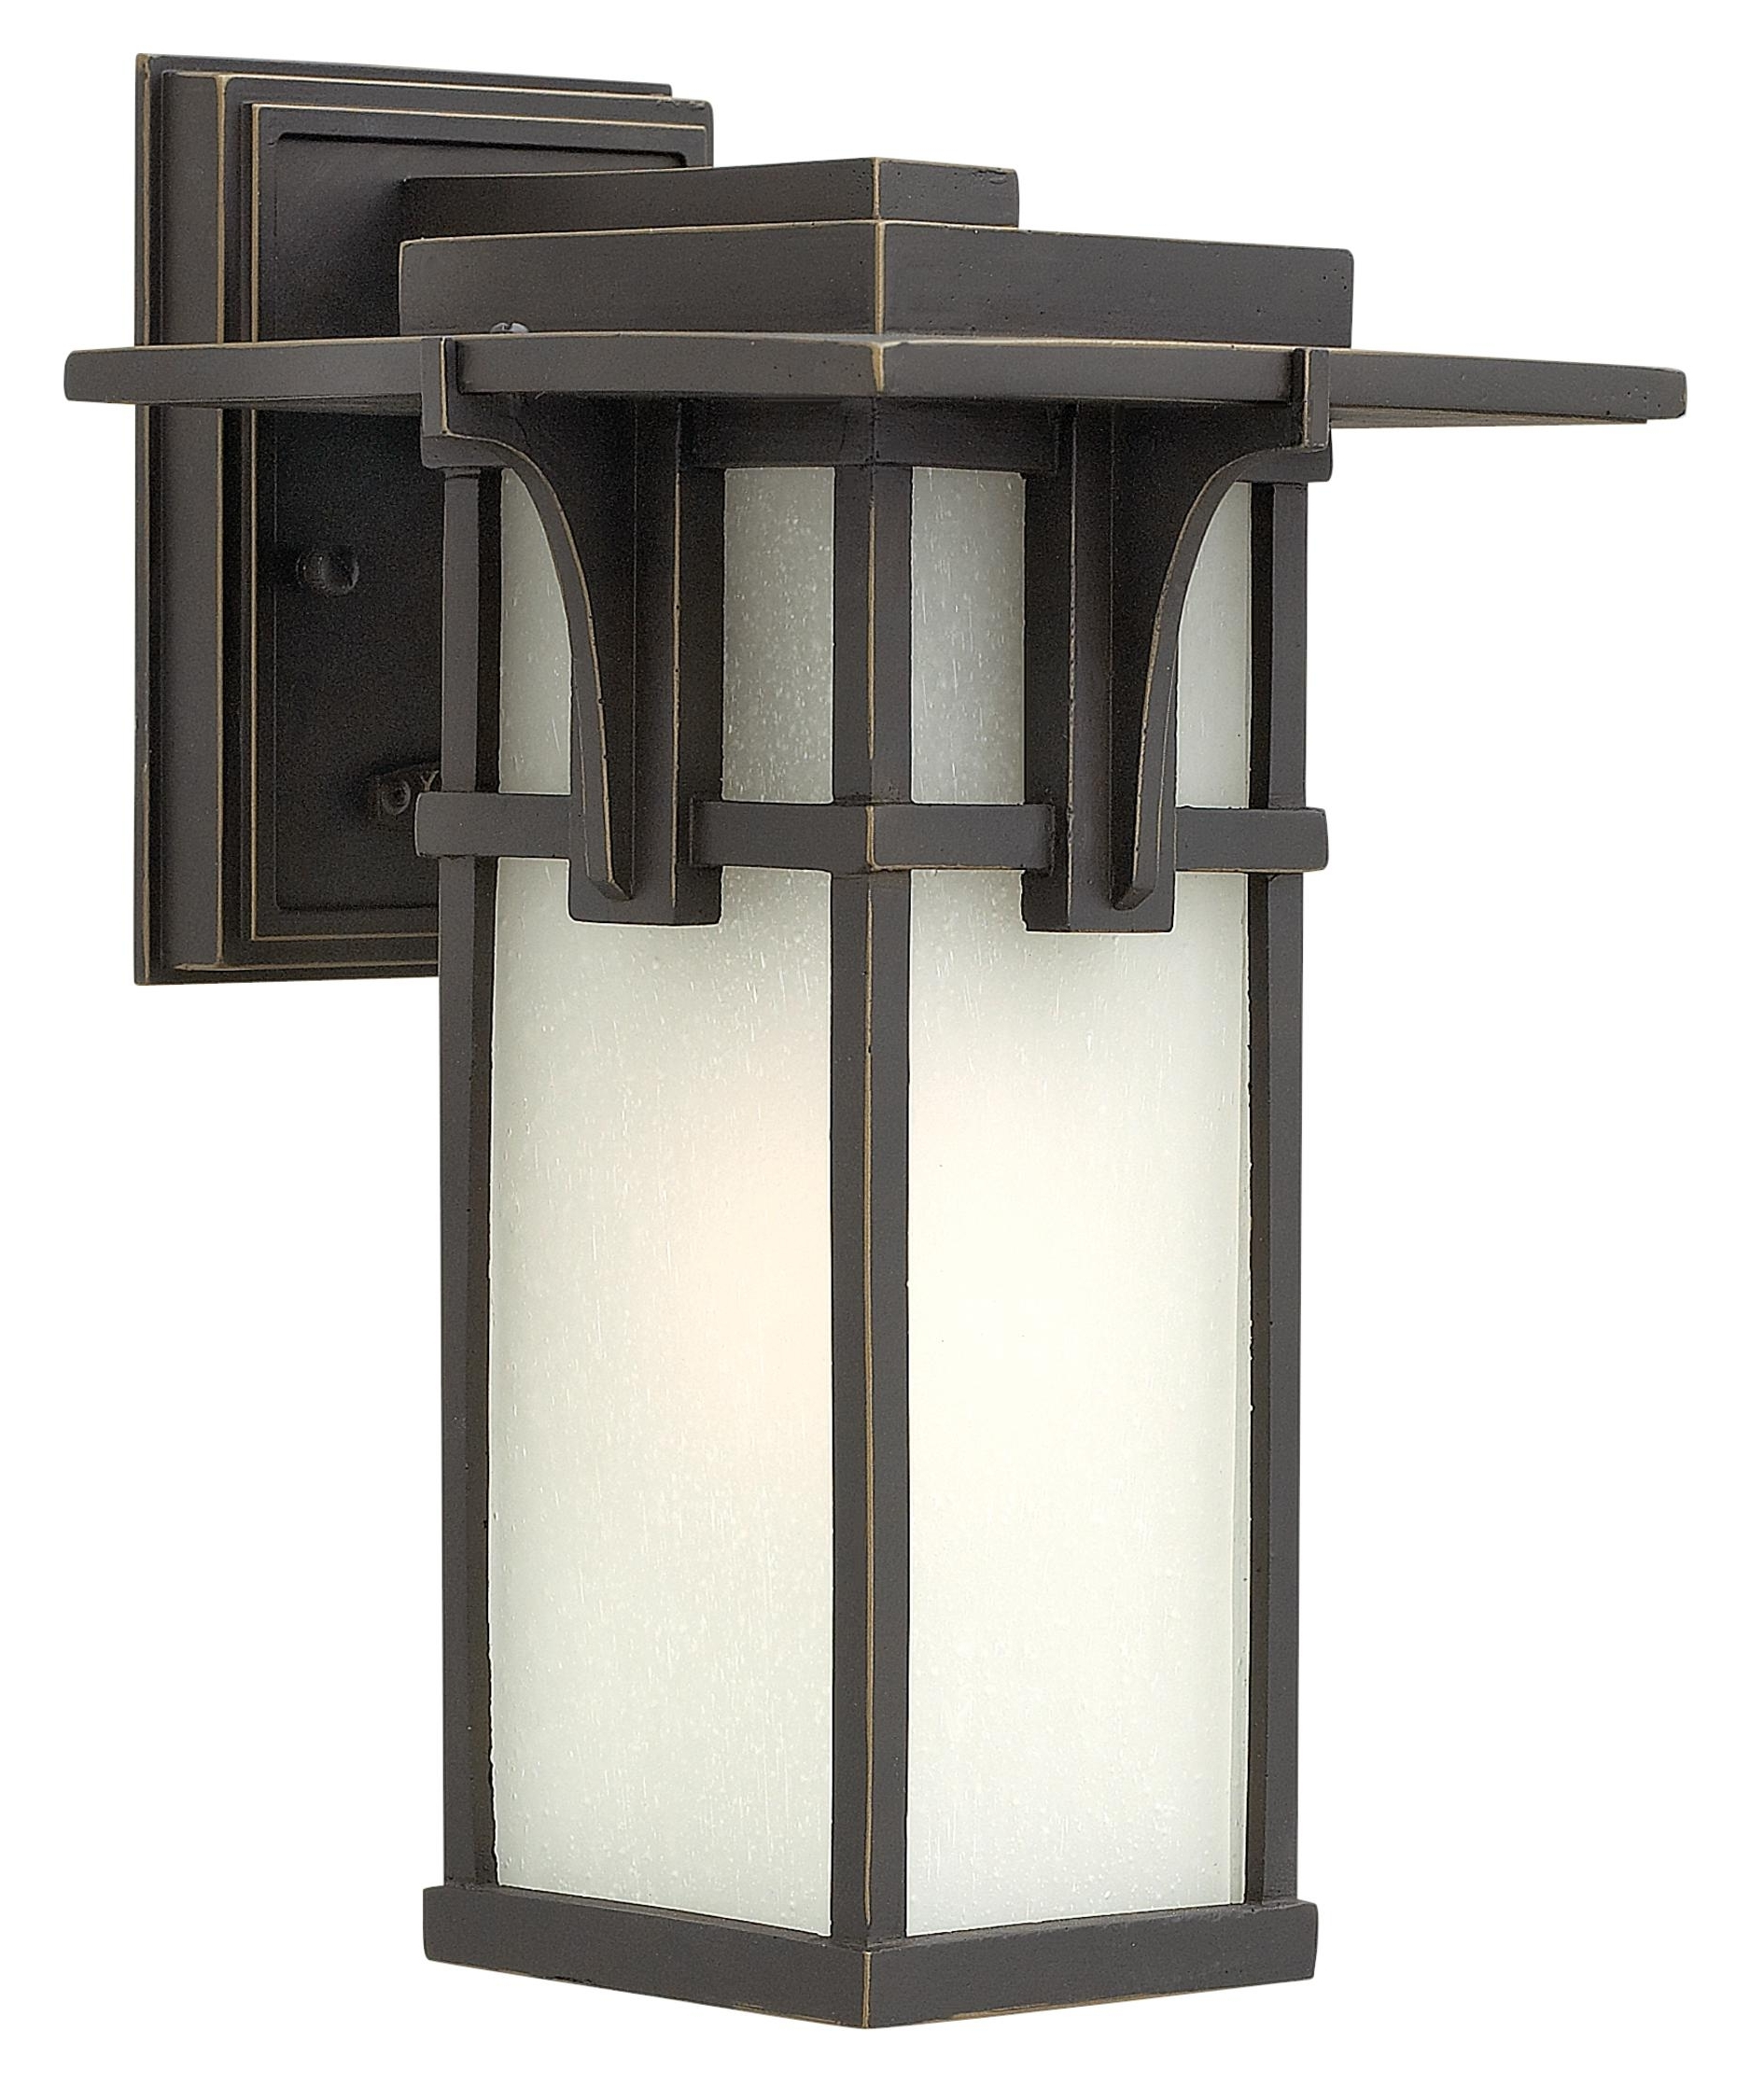 High End Outdoor Wall Lighting In Well Known Hinkley Lighting 2230 Manhattan 7 Inch Wide 1 Light Outdoor Wall (View 3 of 20)